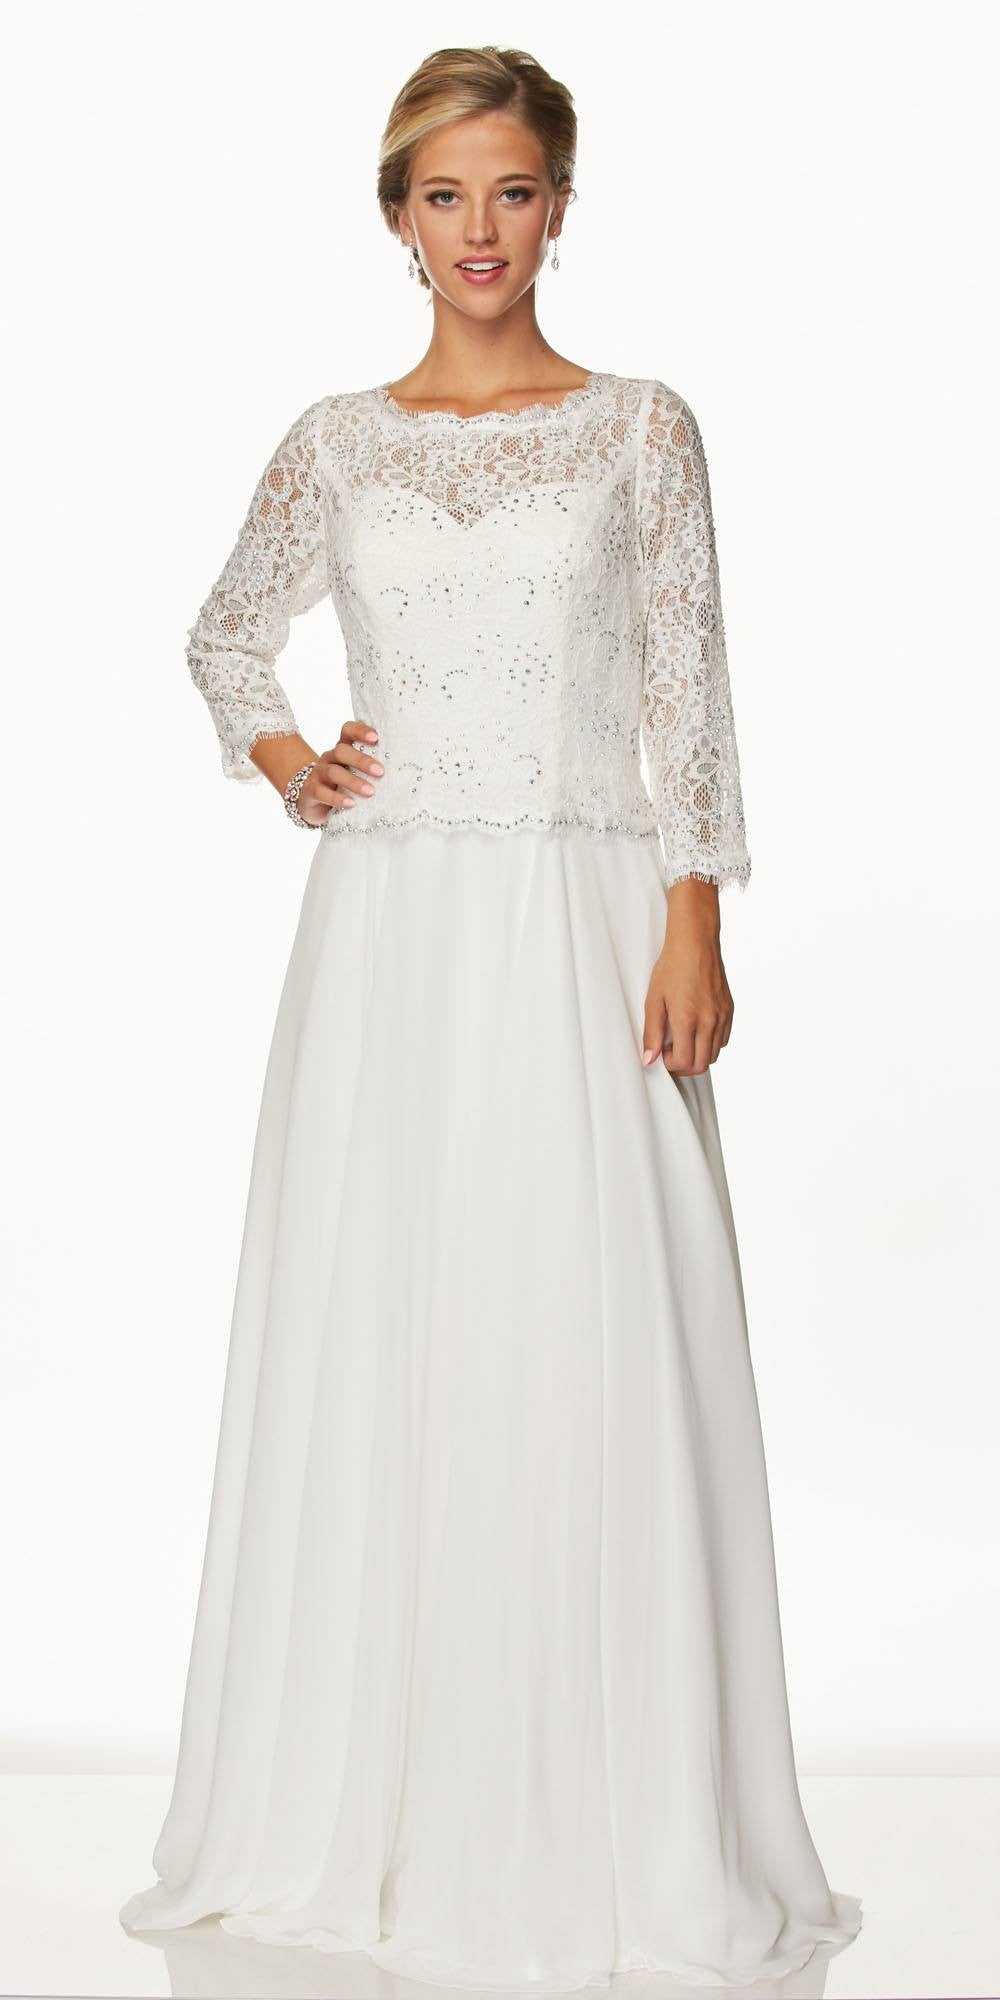 Juliet 630 Silver Lace Top Chiffon Skirt Mother of Bride or Groom ...